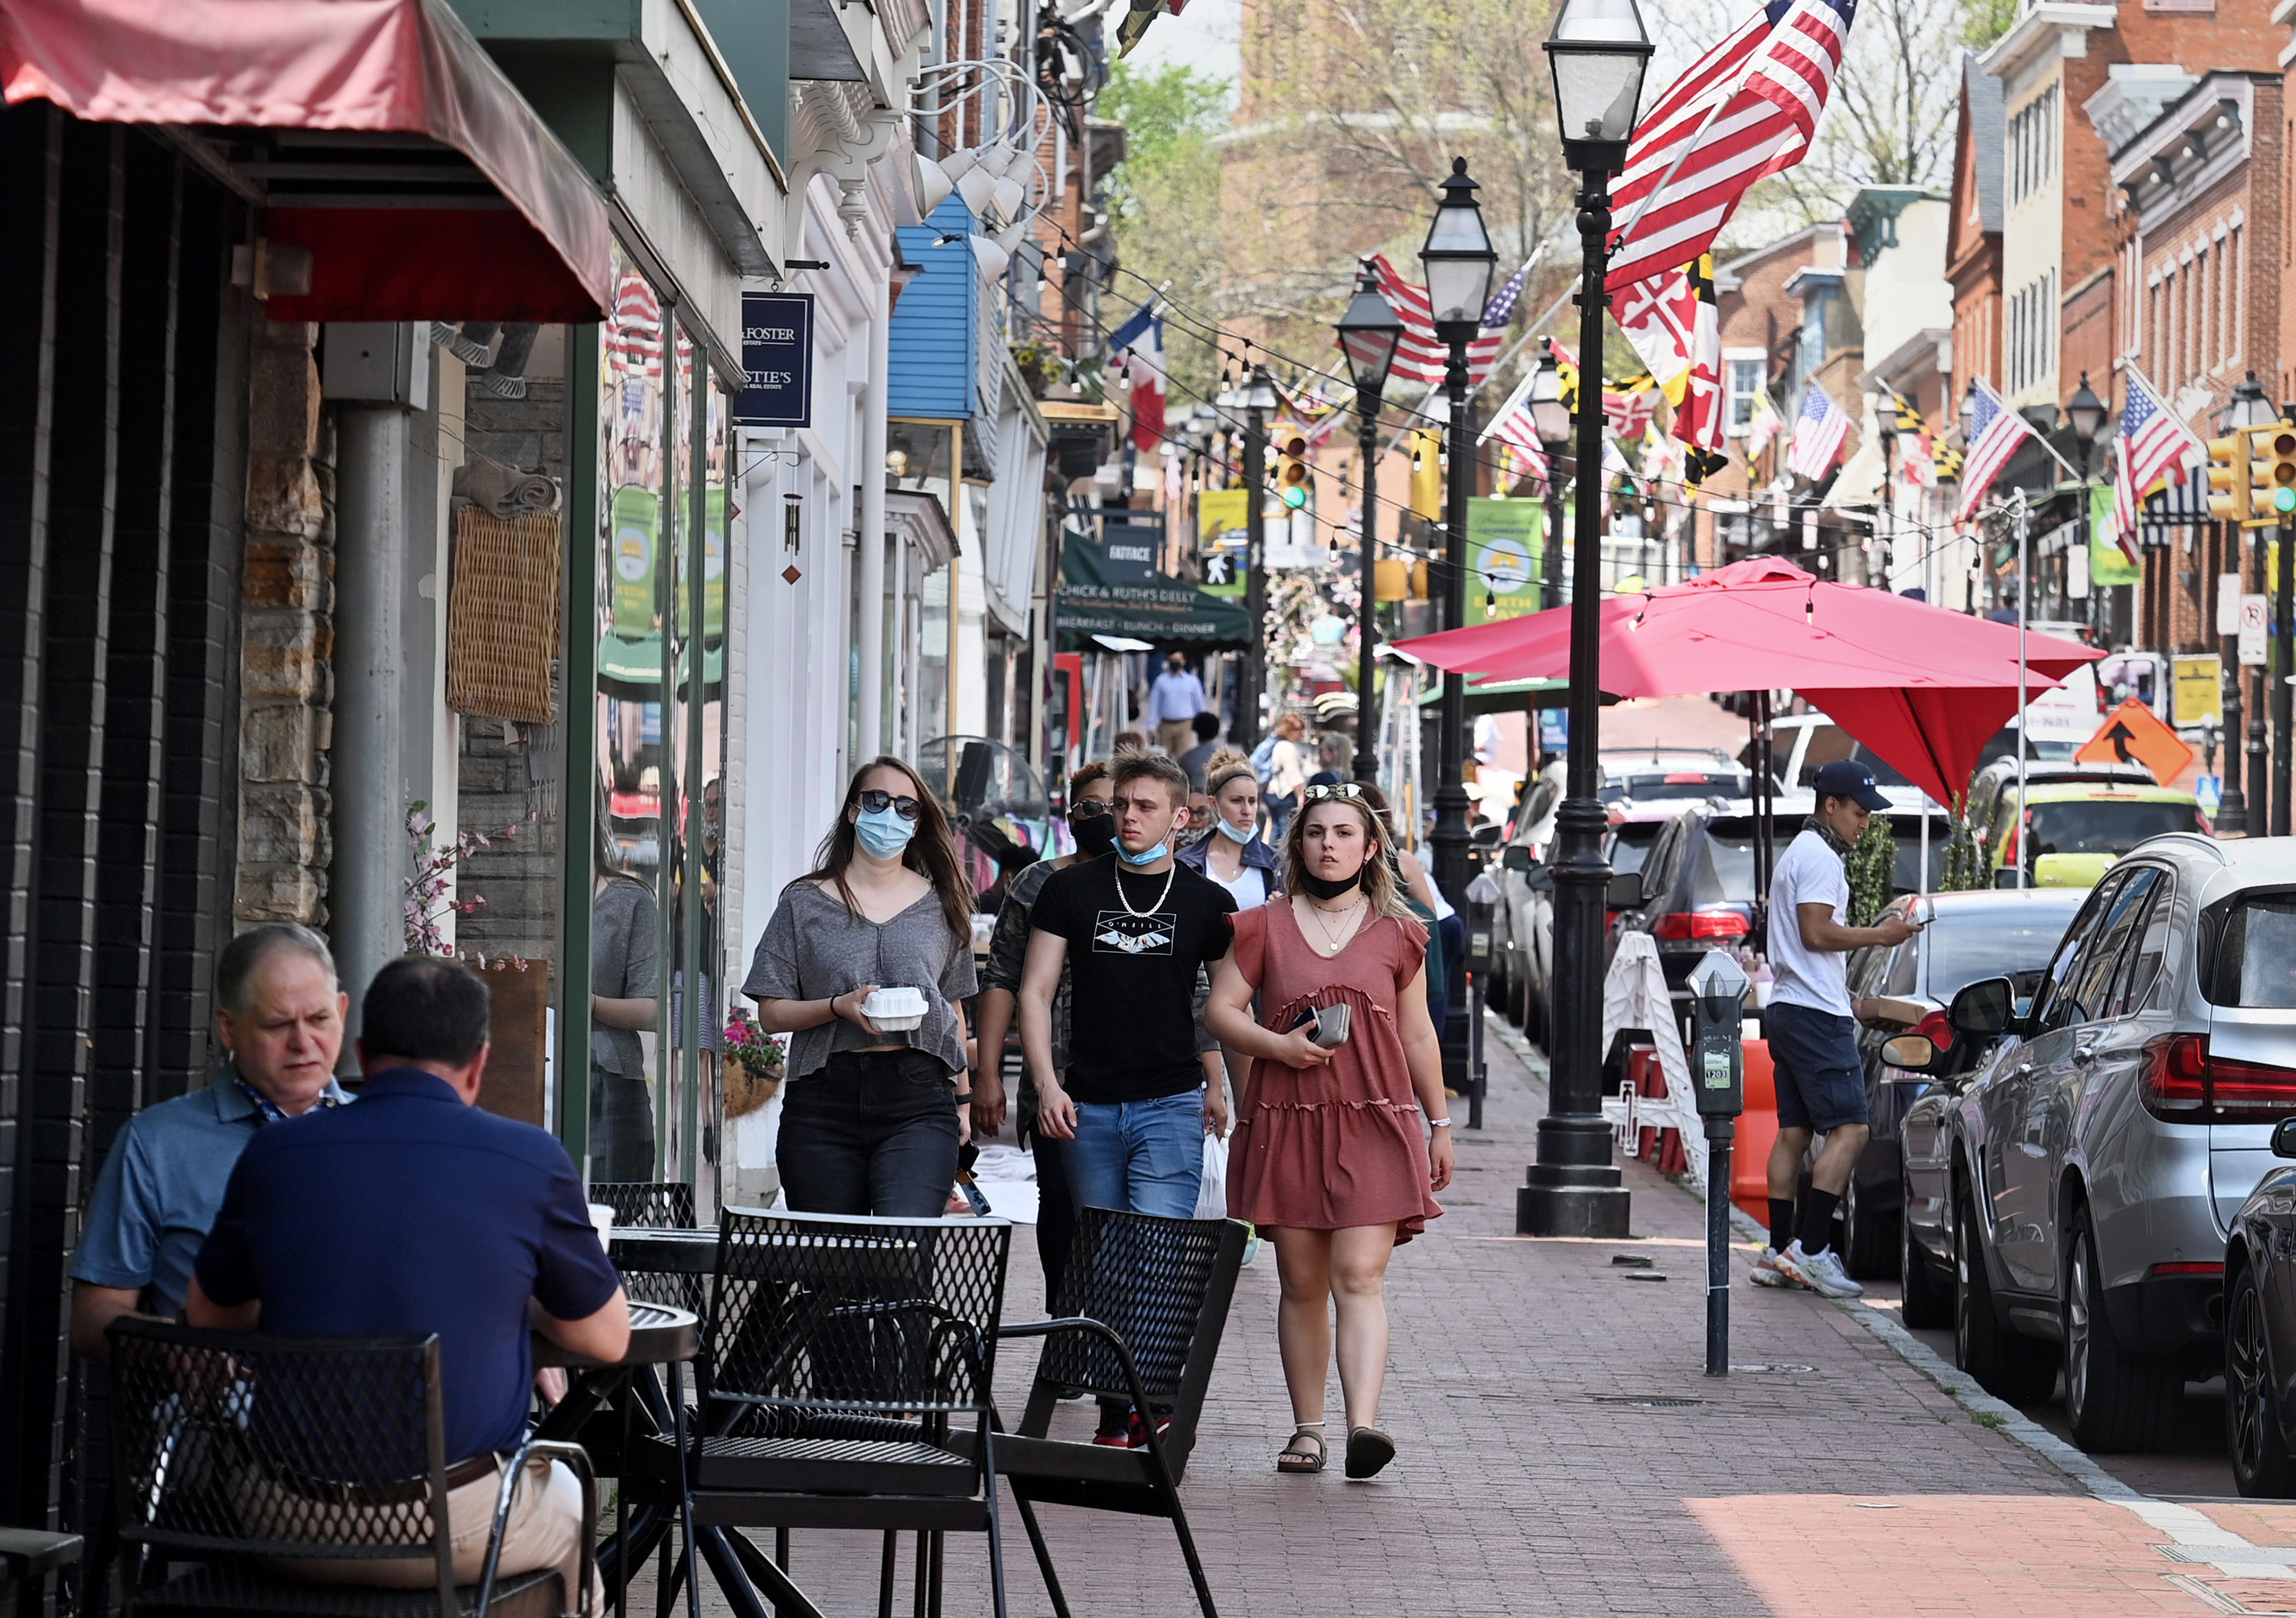 People walk down the street in Annapolis, Maryland, on April 29.